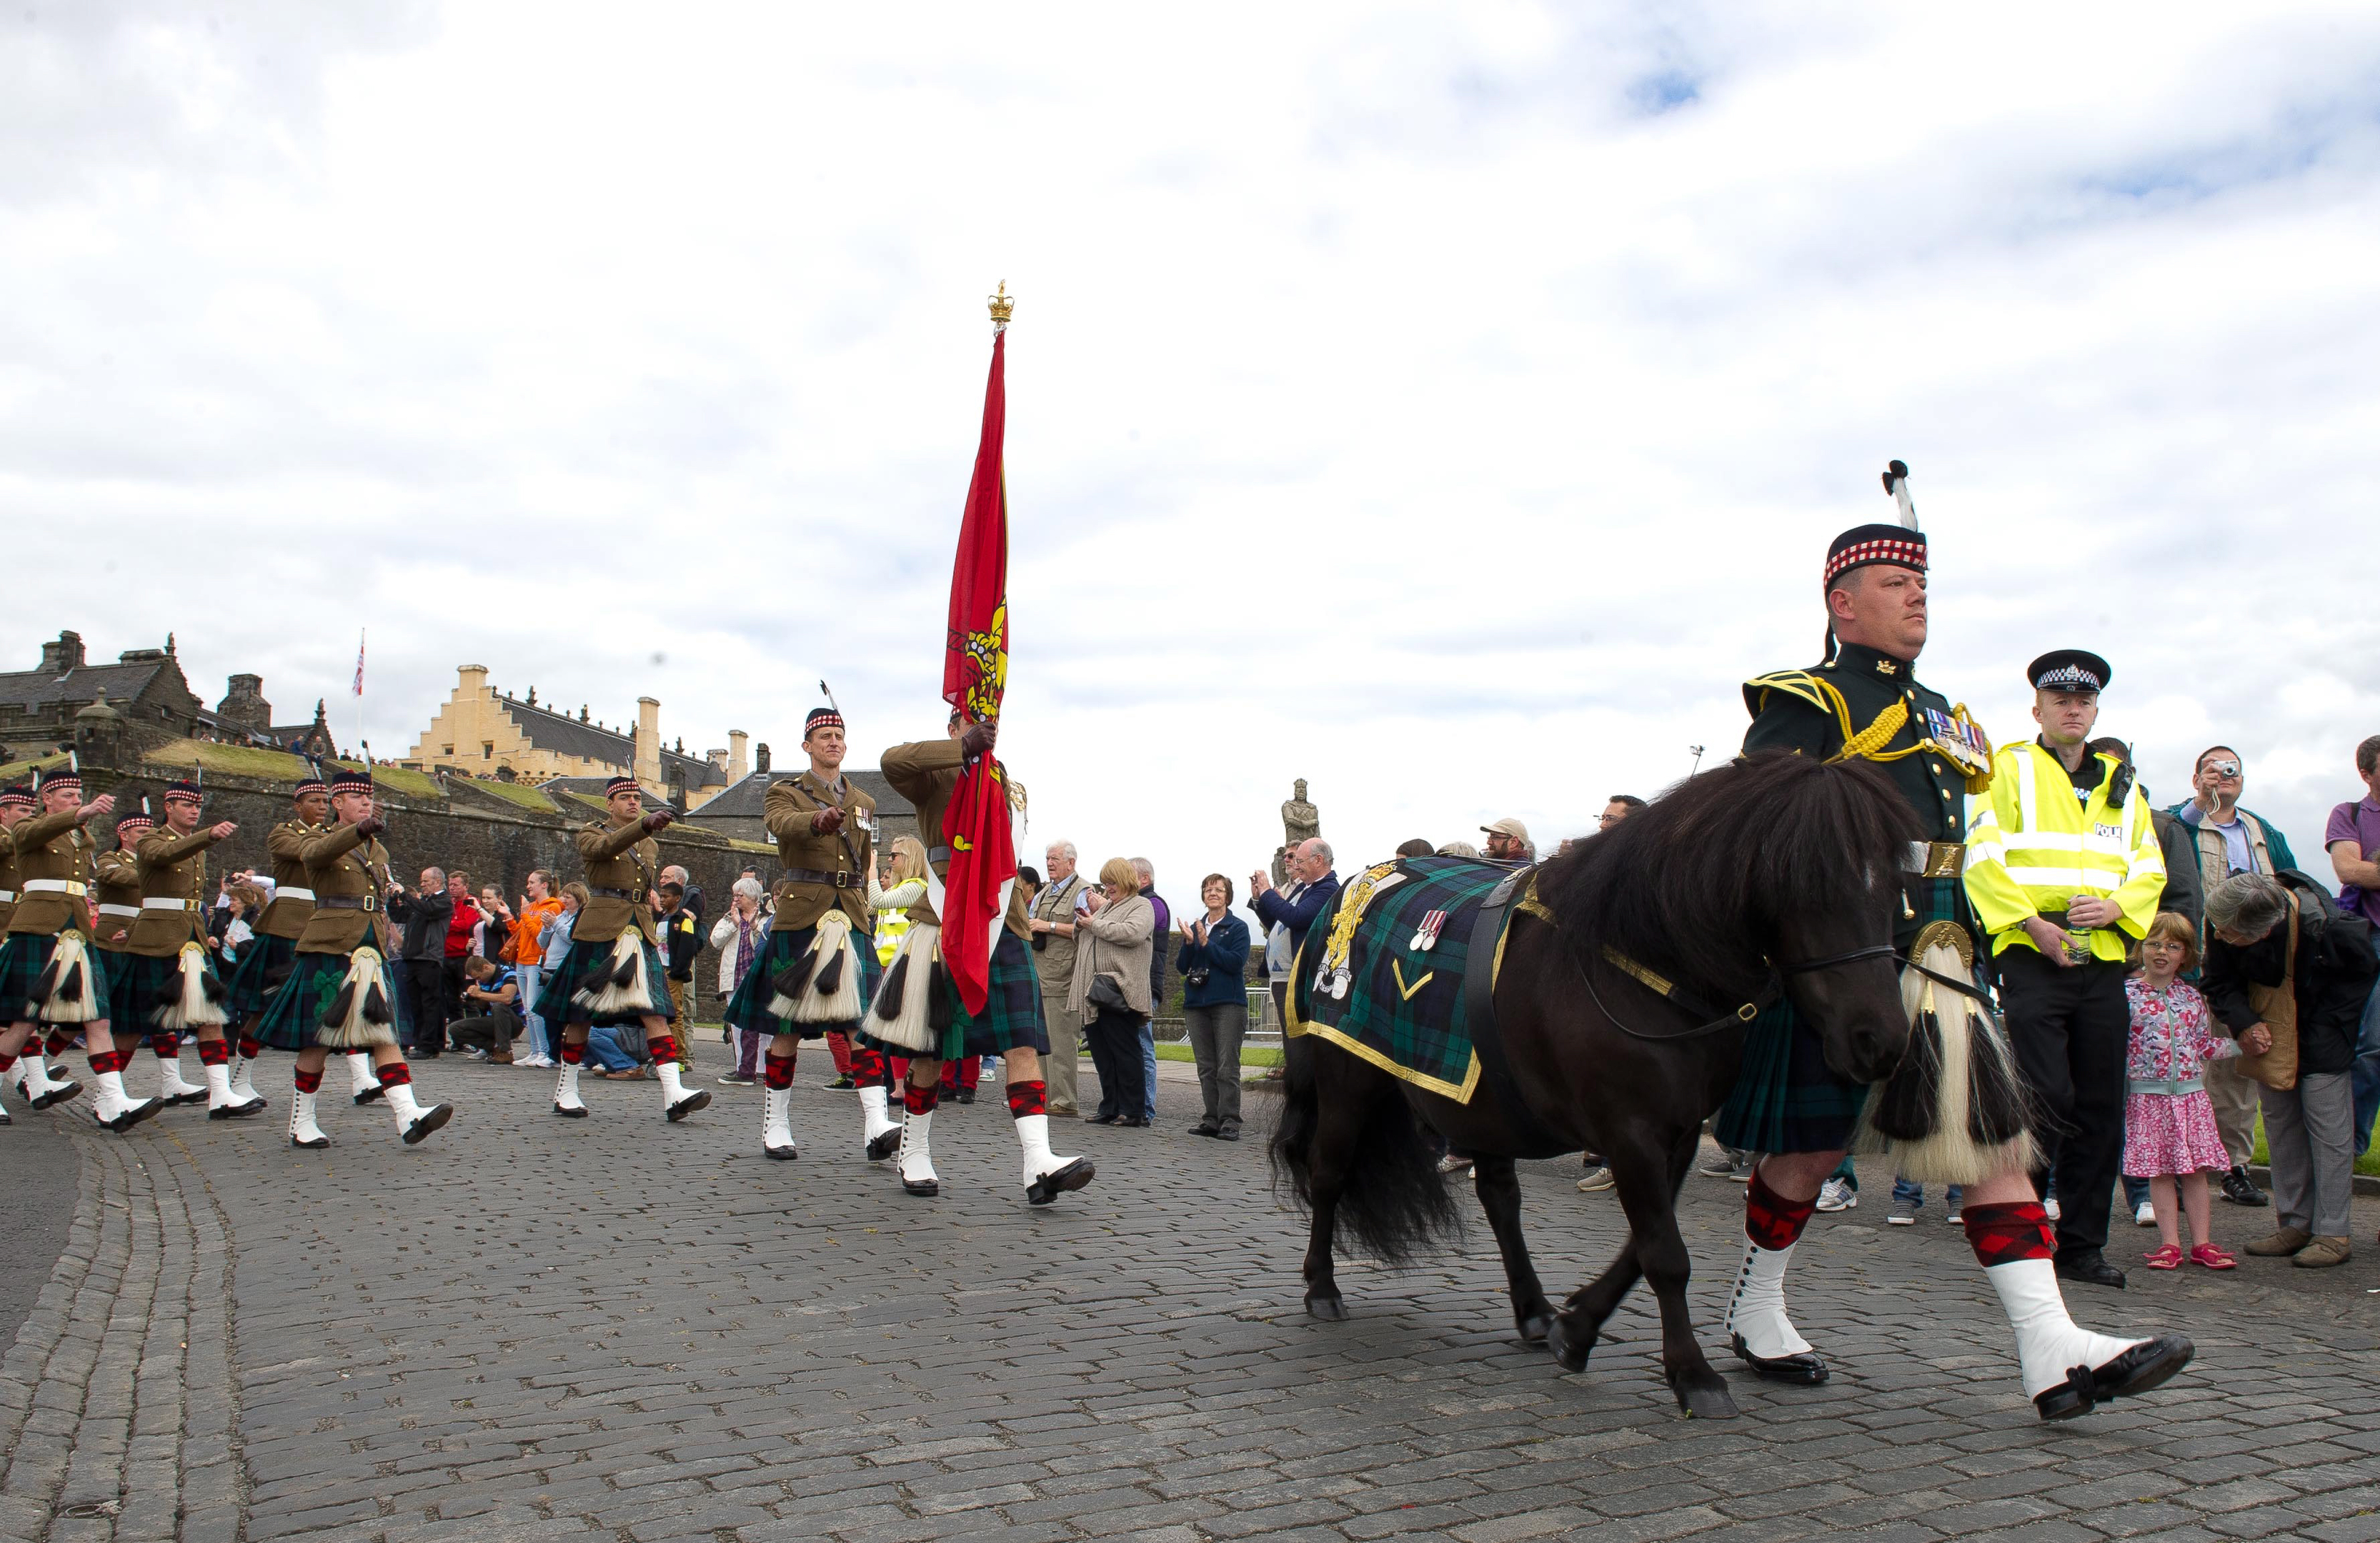 Lance Corporal Cruachan IV leads off the parade of the Royal Regiment of Scotland Armed Forces Day, Stirling, 28 June 2014